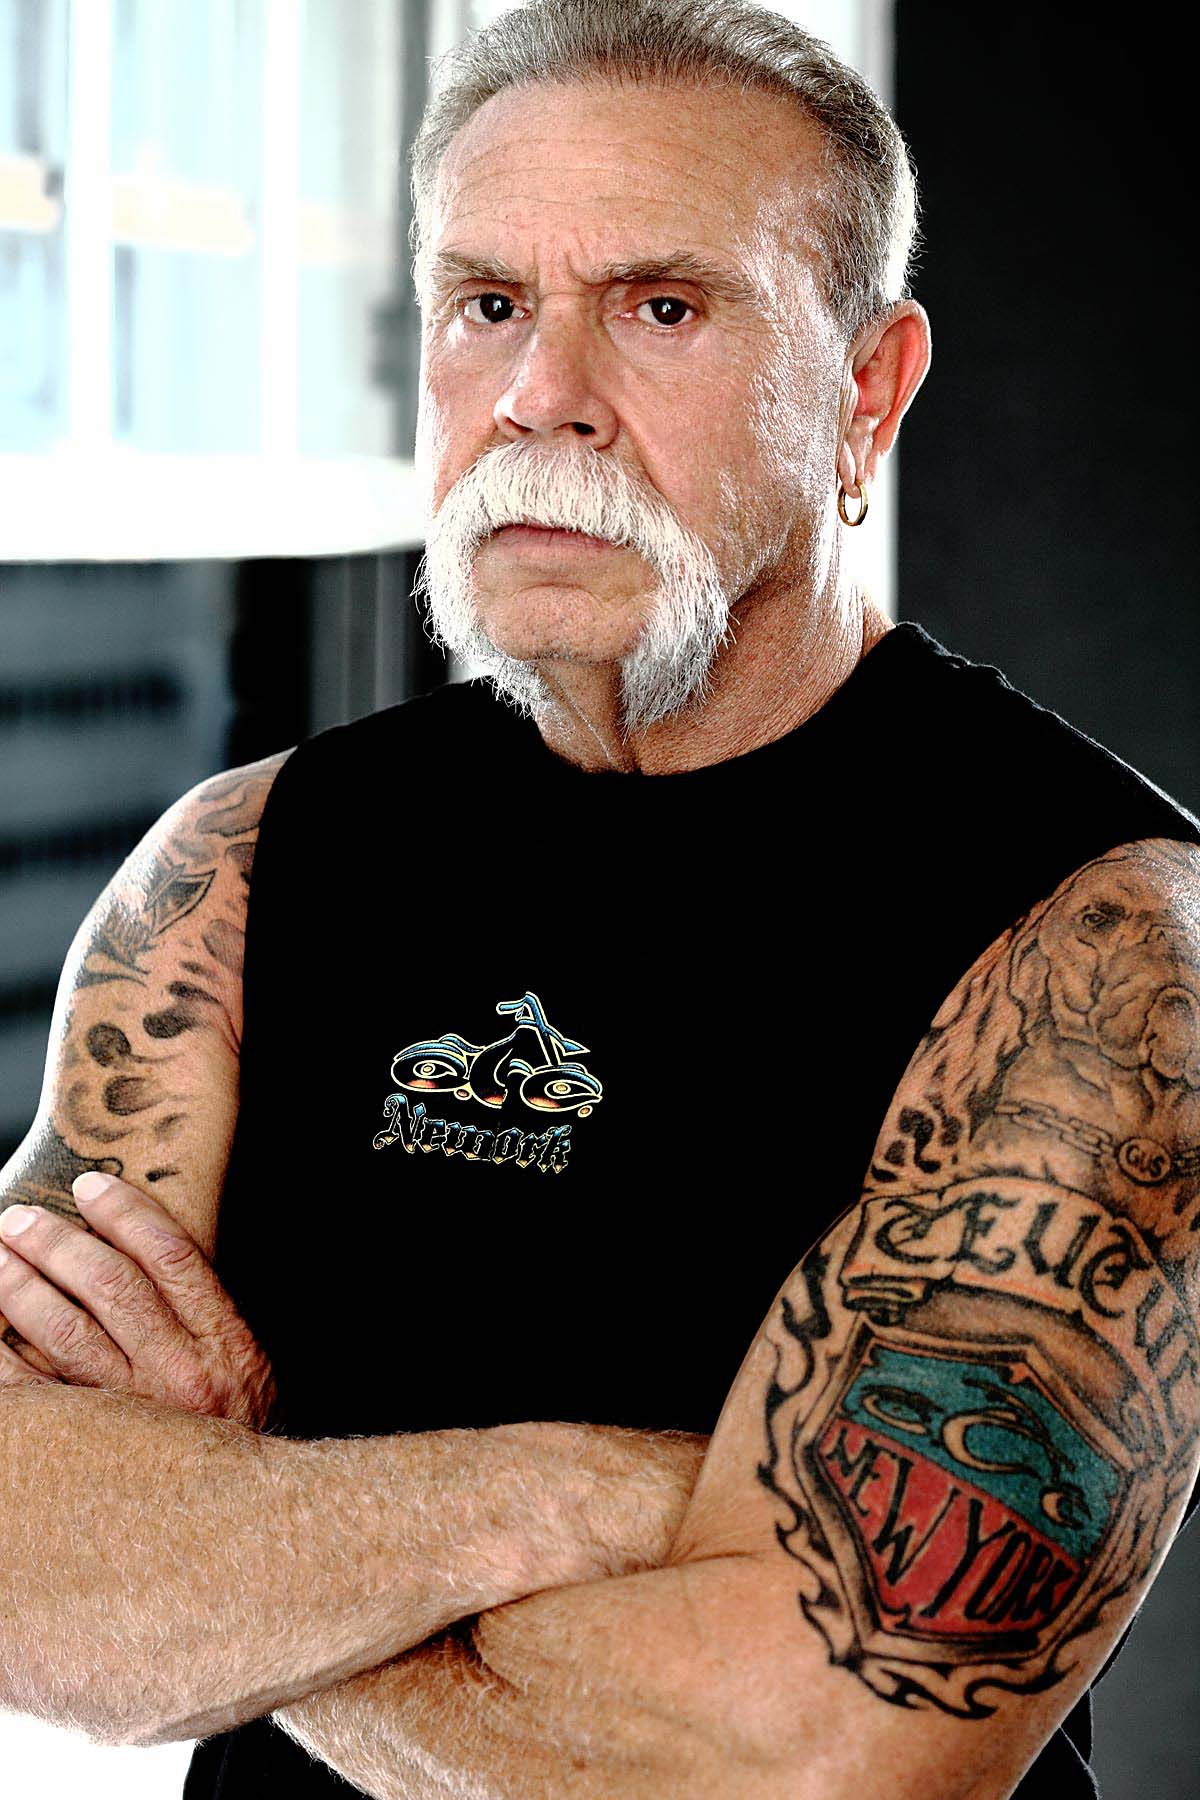 4-Paul-Teutul-Sr-_014-RT